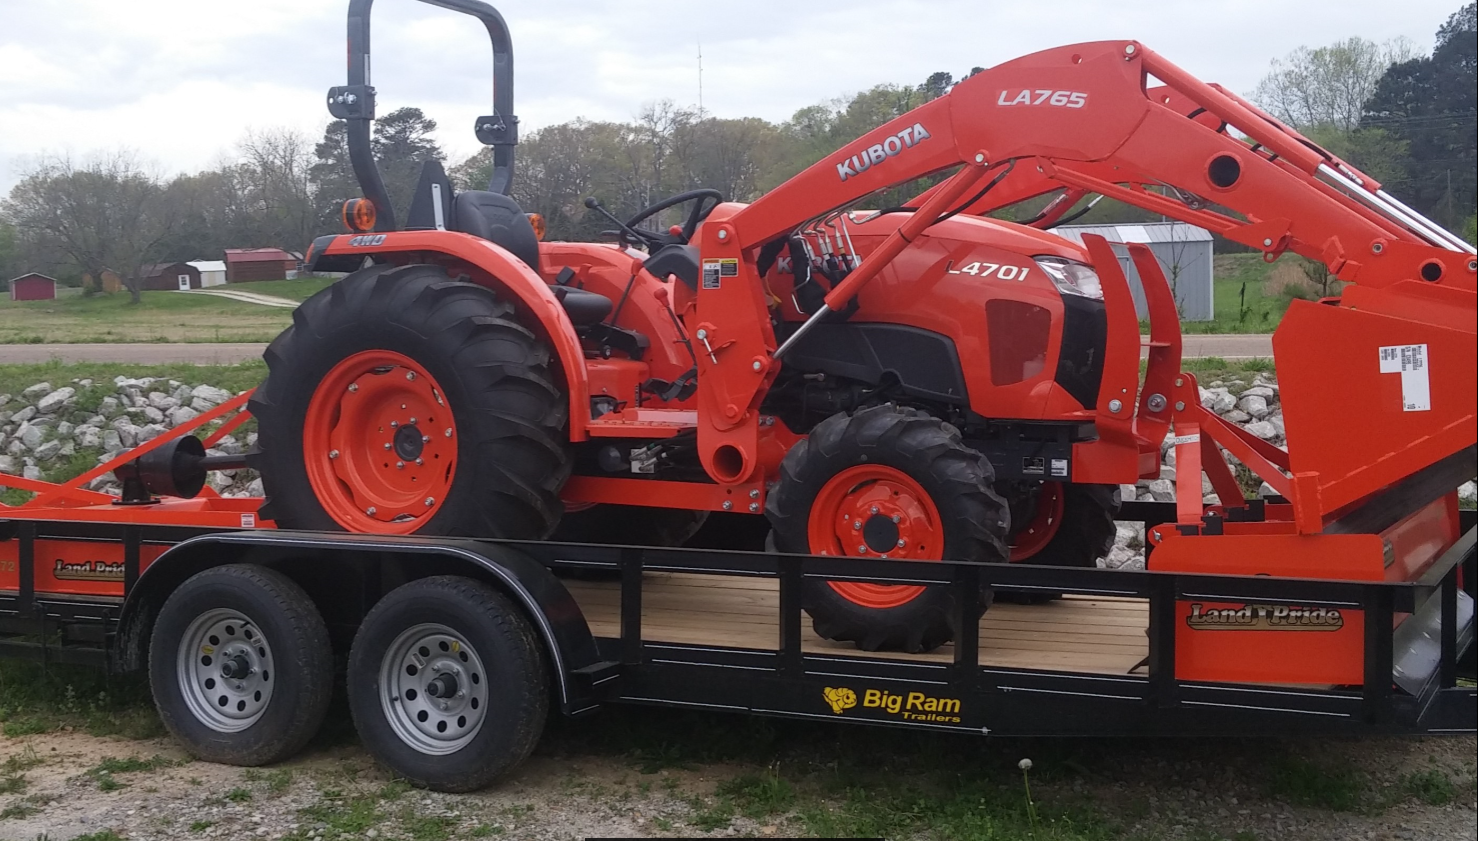 Kubota L4701 Tractor Package Deal  Coleman Tractor Company